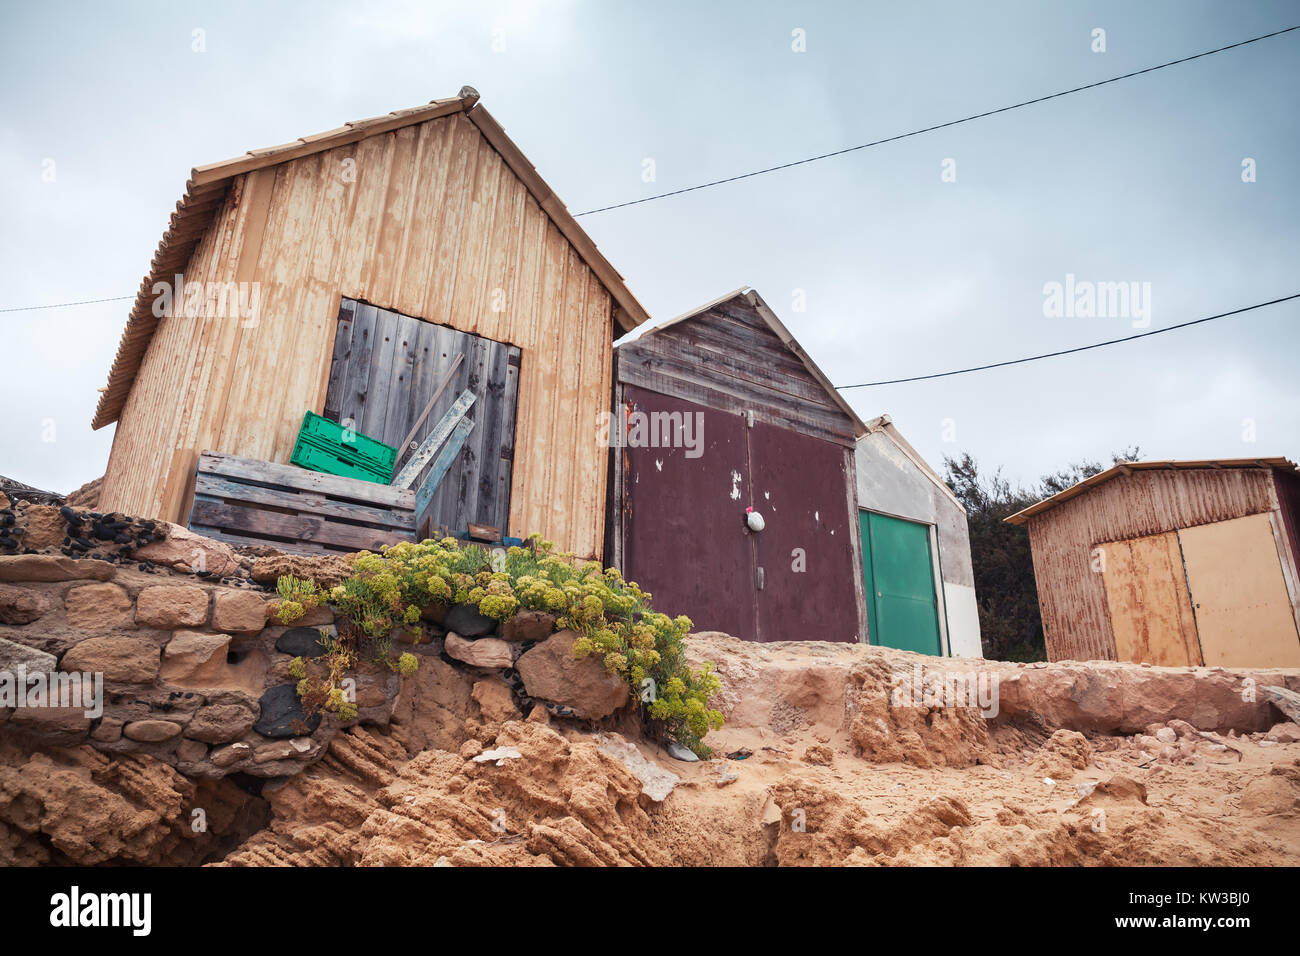 Wooden barns on the beach of Porto Santo island in the Madeira archipelago, Portugal - Stock Image